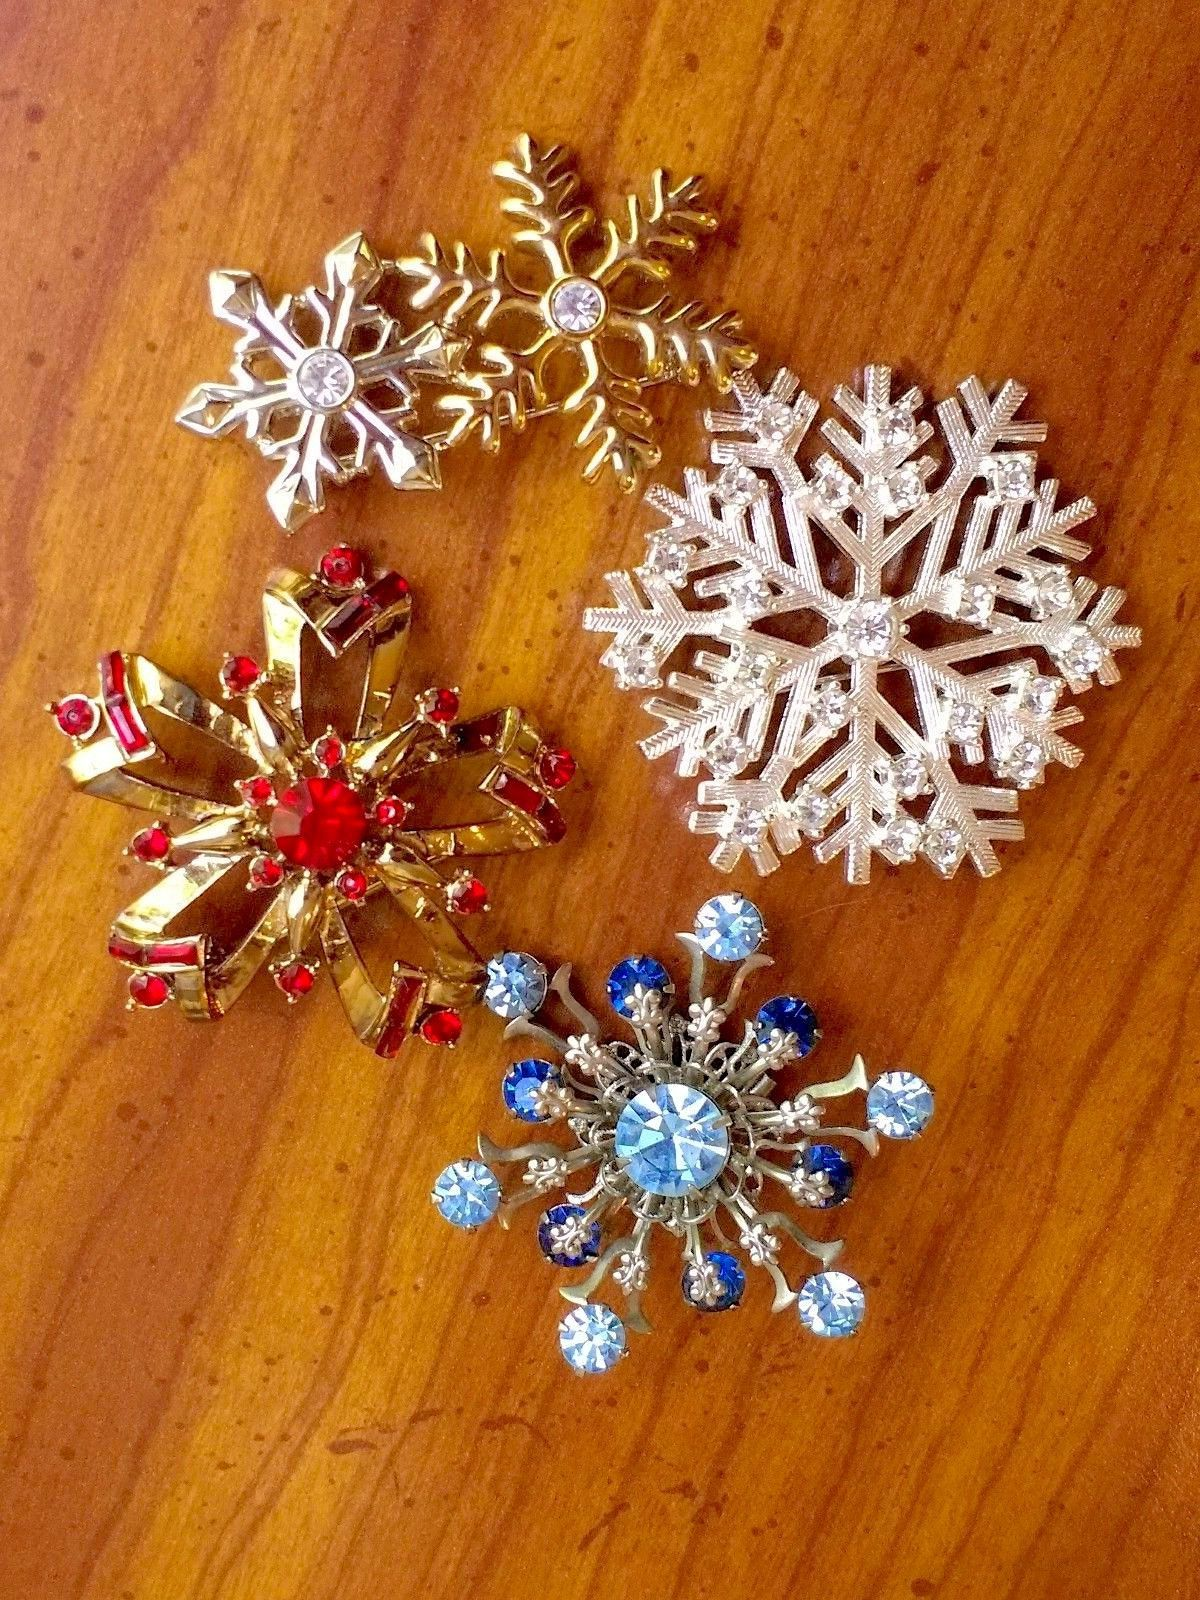 598580e178d Stunning Vintage Lot Of SNOWFLAKE STARBURST Pins Brooches Holiday Seasonal  Estate Women's Costume Jewelry by VintagePolice4U on Etsy